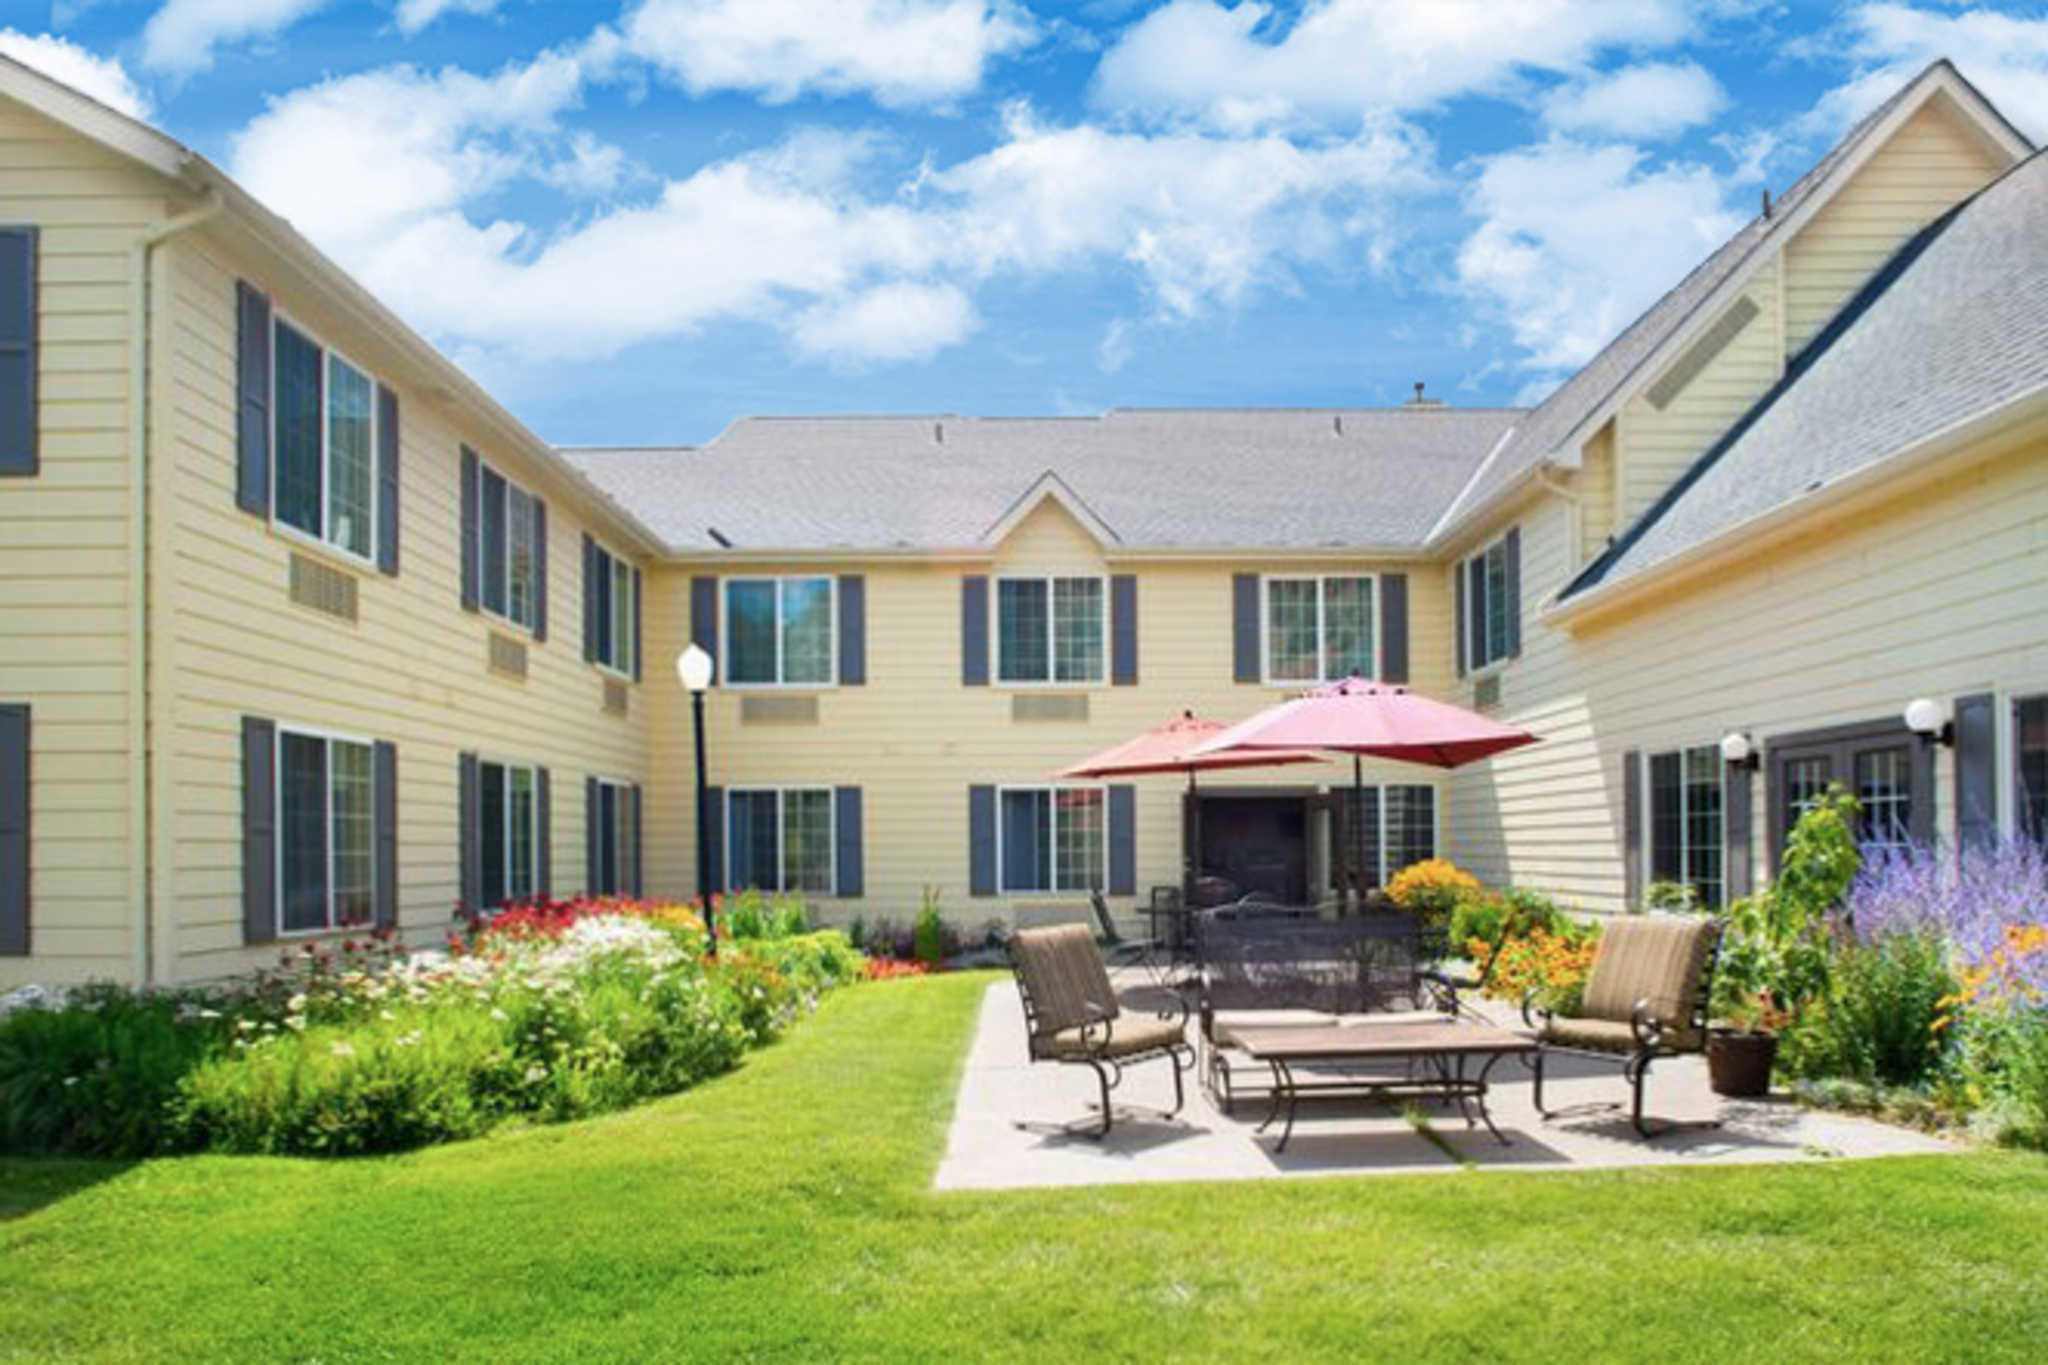 Comfort Inn Amp Suites Coupons Carbondale Co Near Me 8coupons